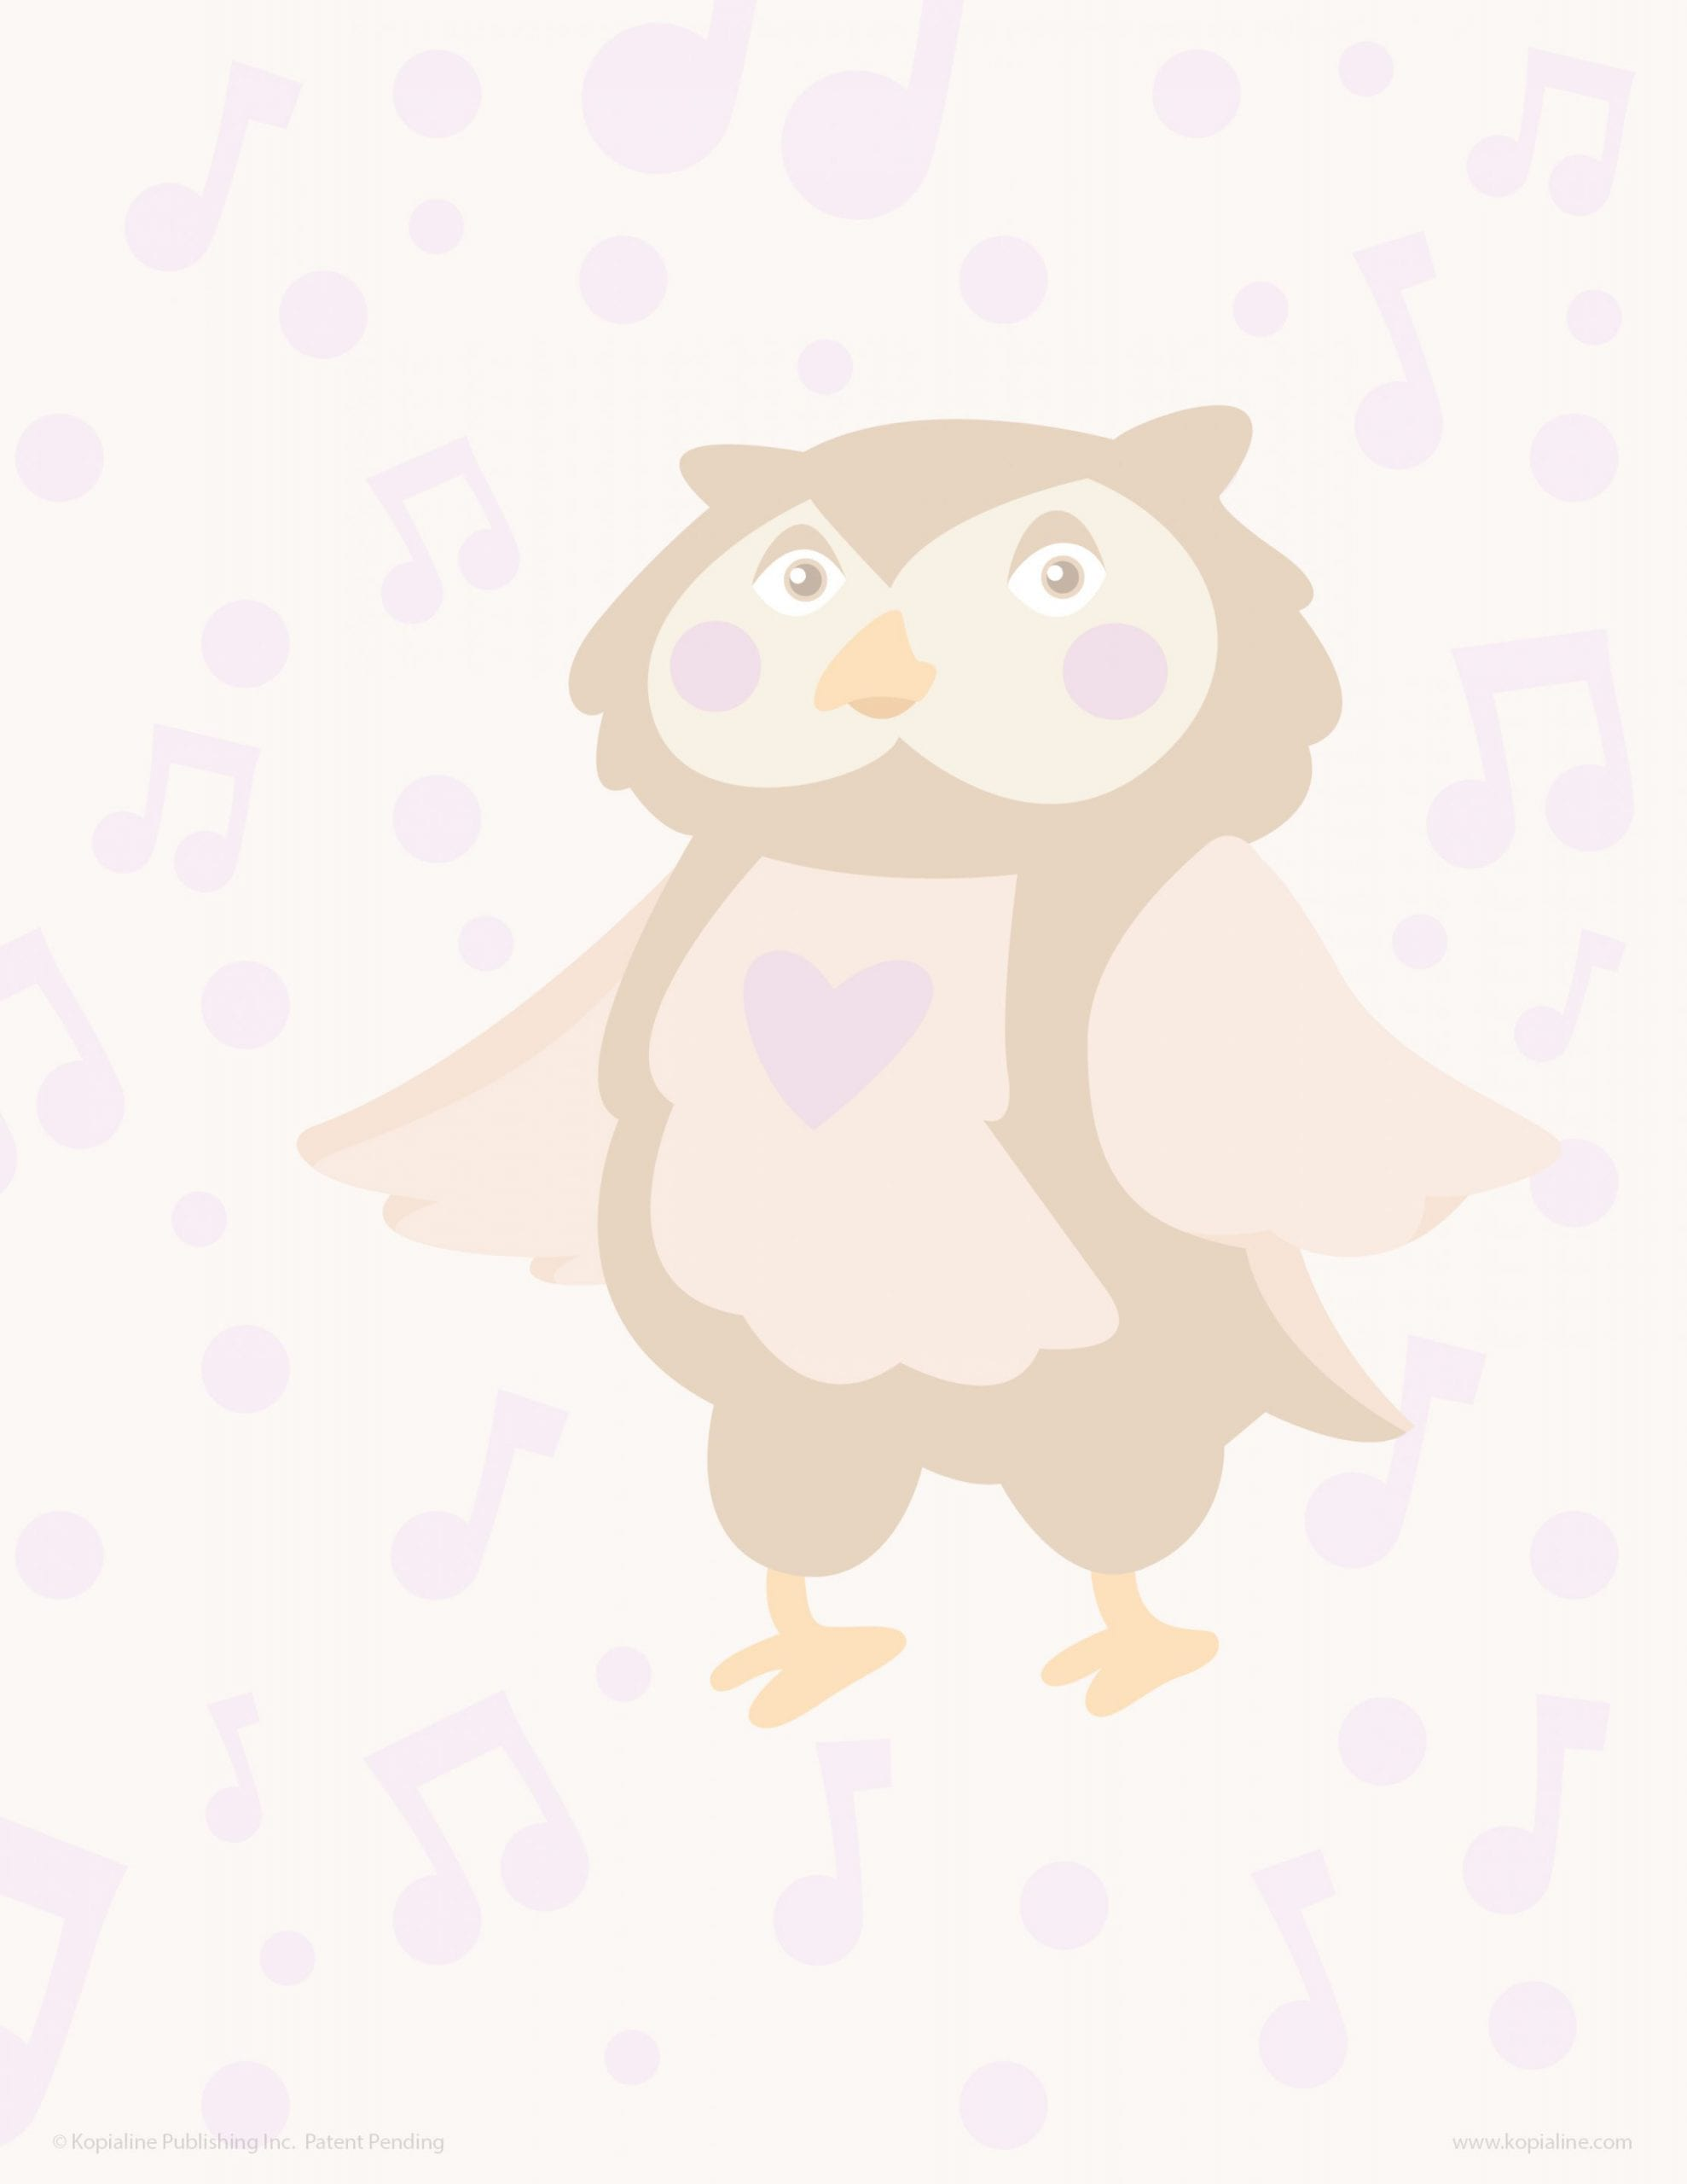 Practice Drawing Learn to Draw The Love Owl Kopiography